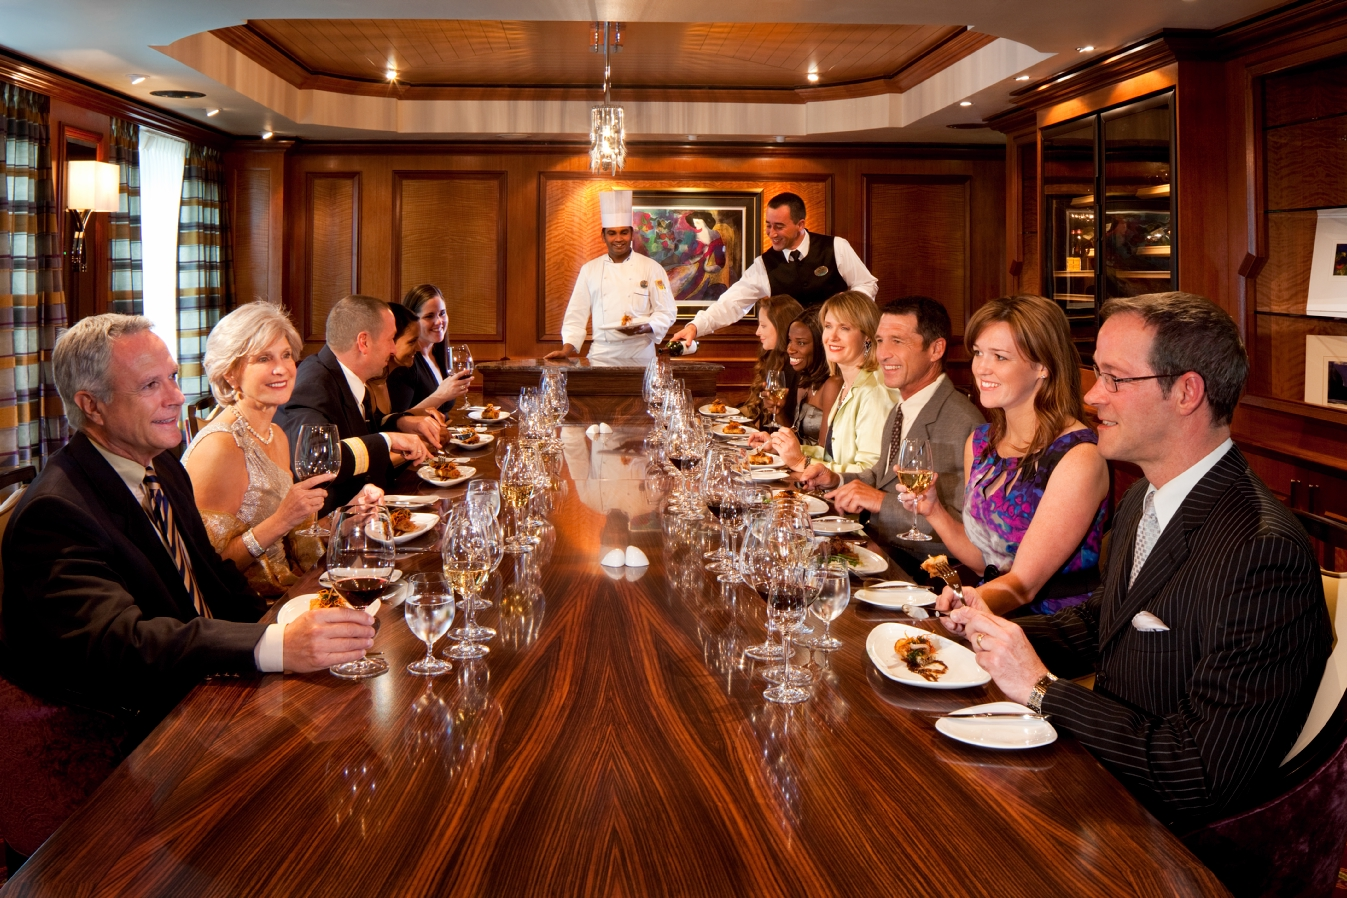 Oasis of the seas royal caribbean cruise ship for Table 52 brunch dress code